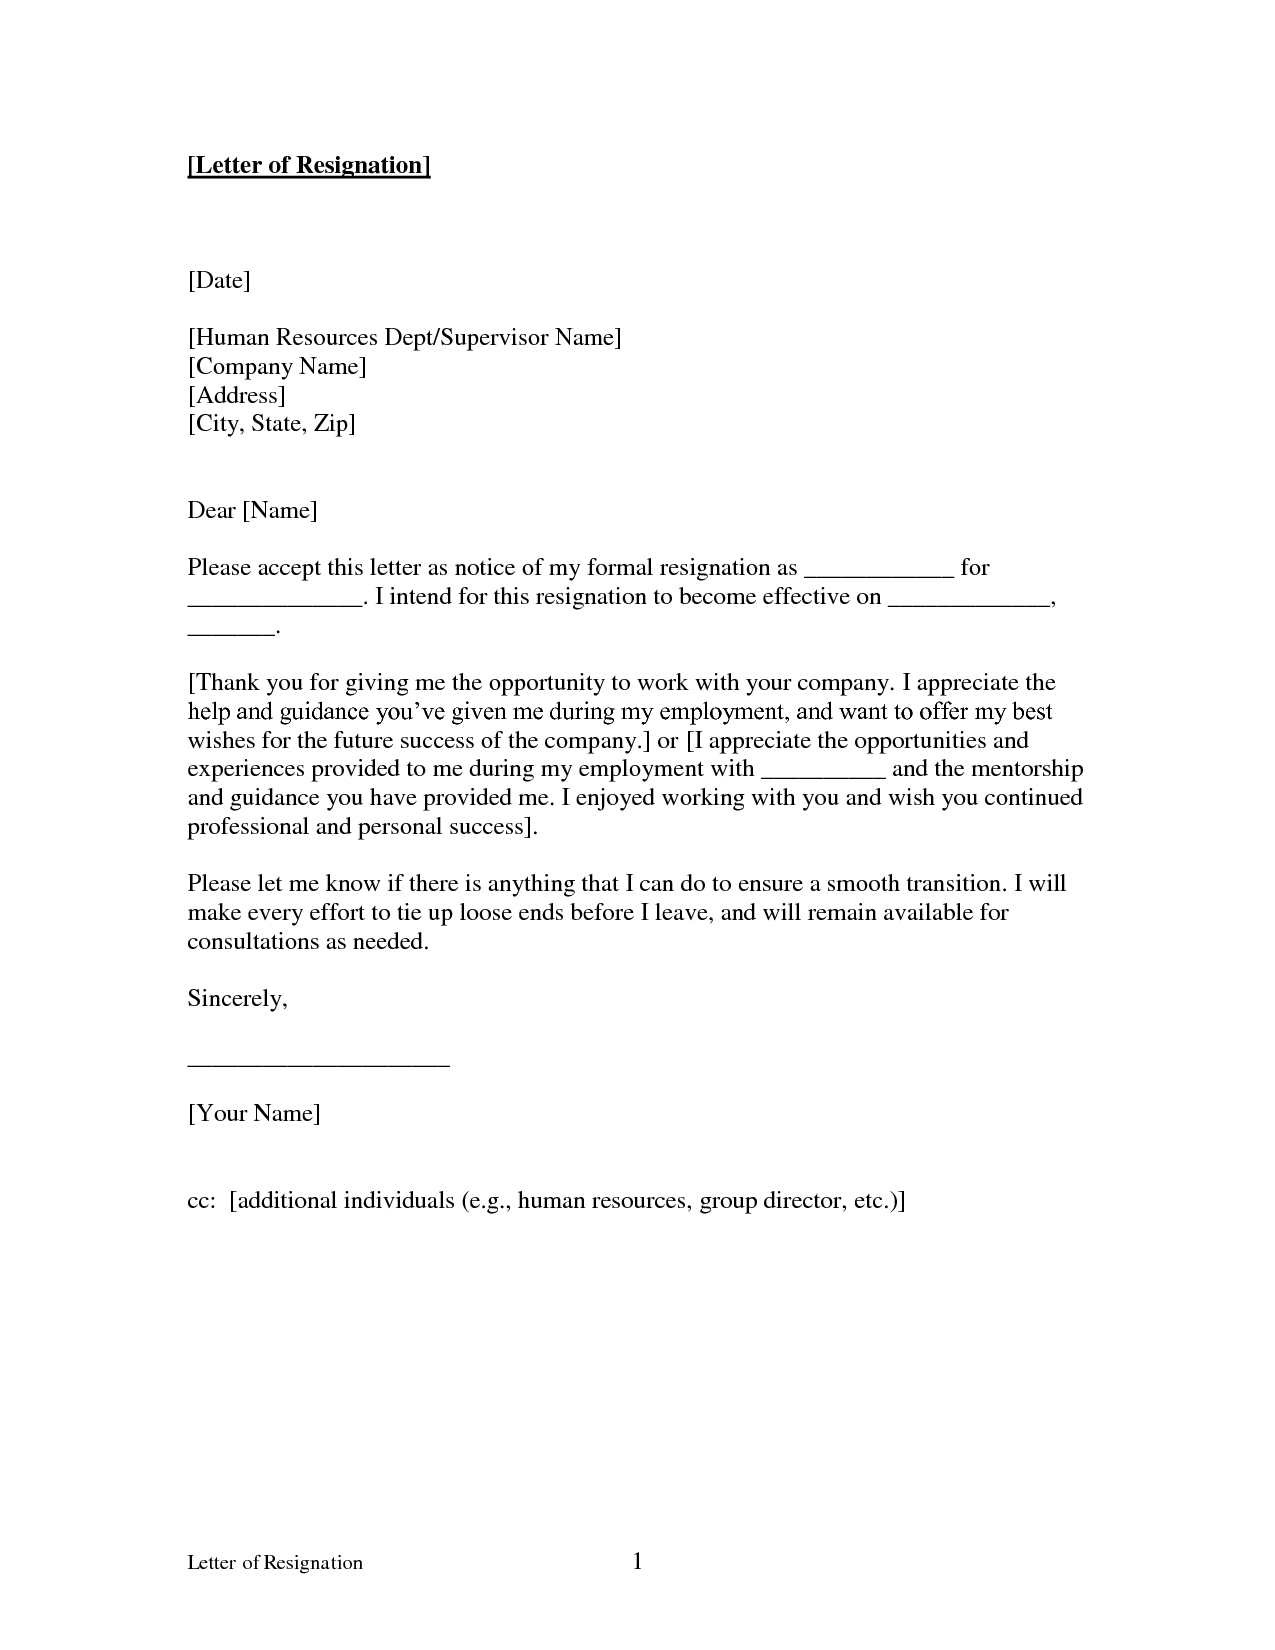 Real Estate Introduction Letter to Friends Template - Printable Sample Letter Of Resignation form